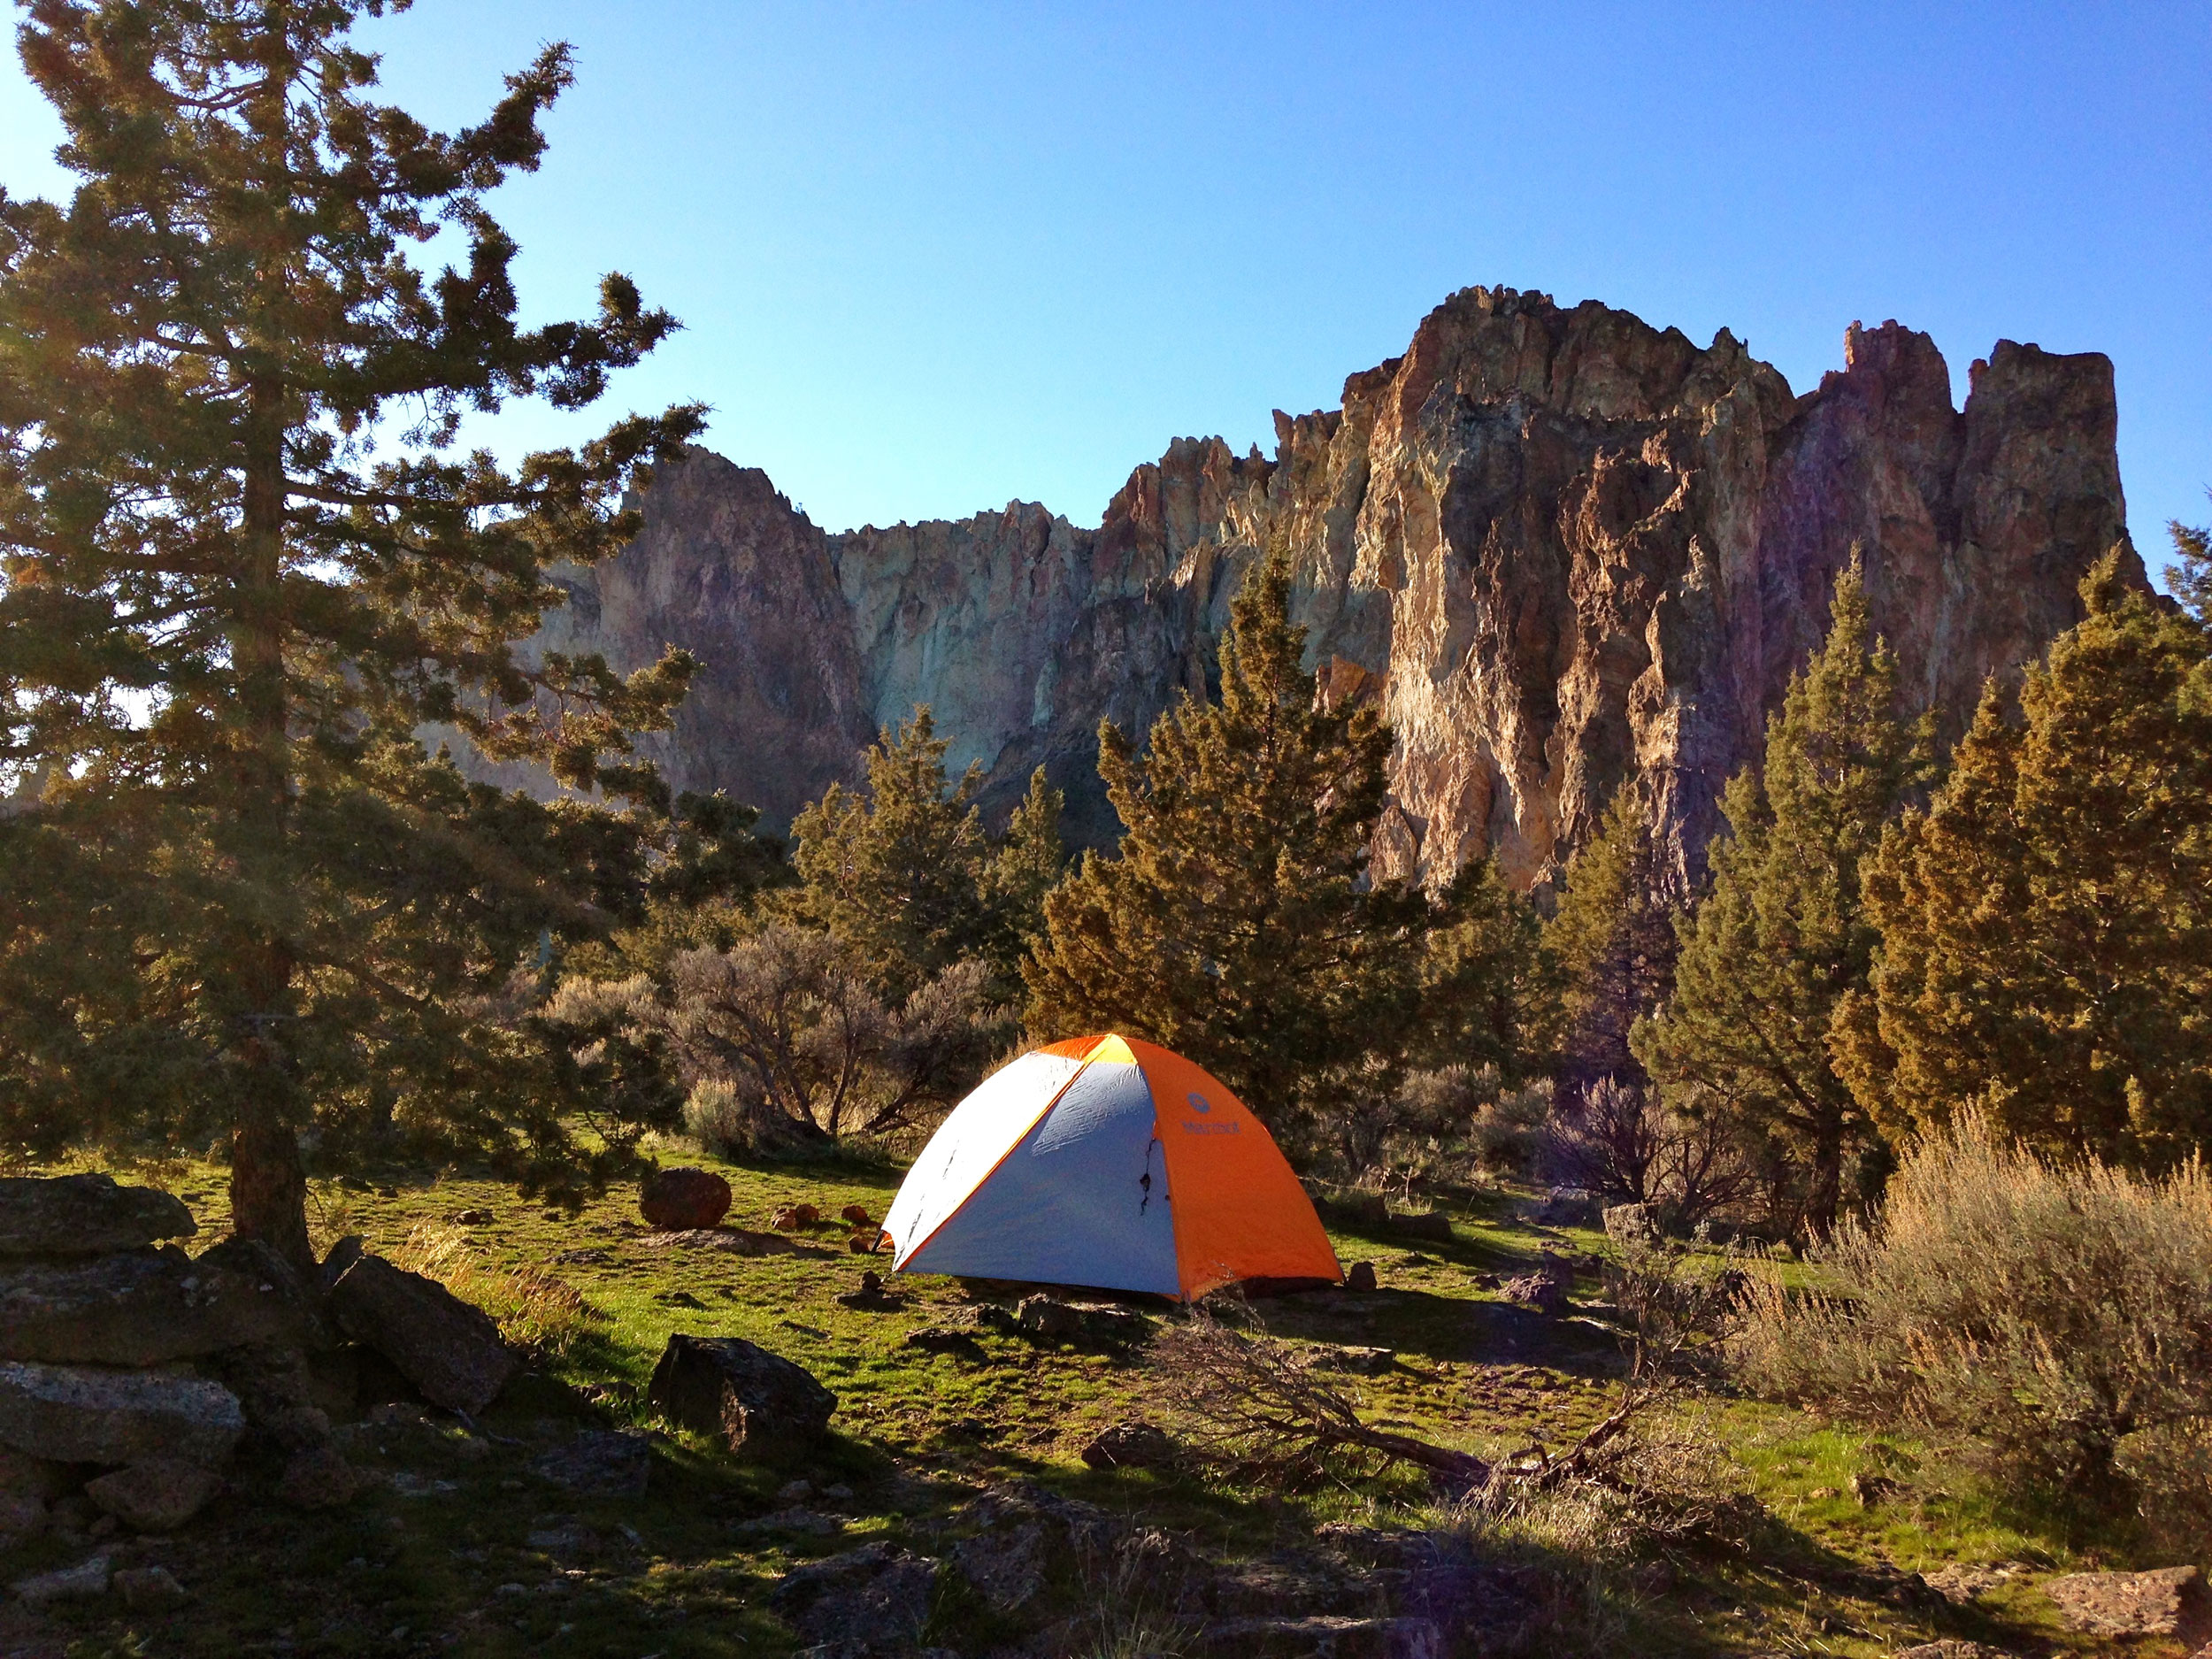 tent by the rimrock overlooking the river gorge at the Bivy campground at Smith Rock State Park